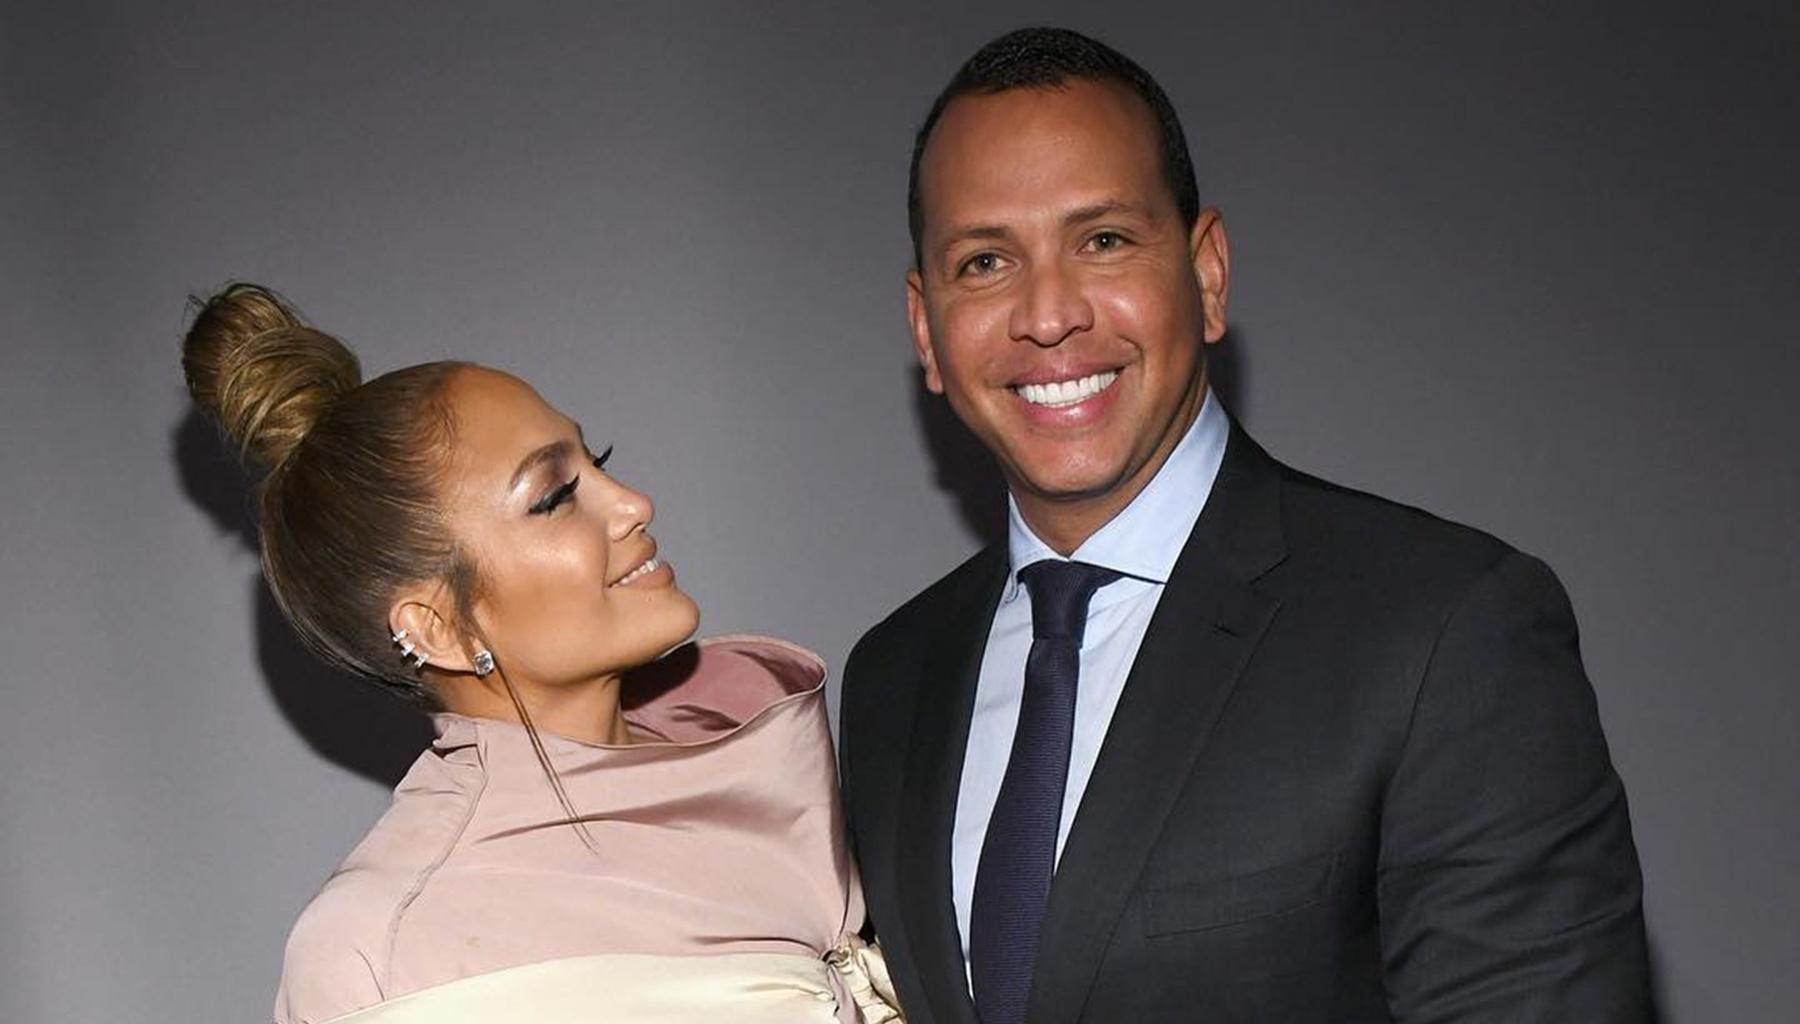 Alex Rodriguez Proposes With Huge Million-Dollar Engagement Ring -- Will This New Jennifer Lopez Marriage Last?